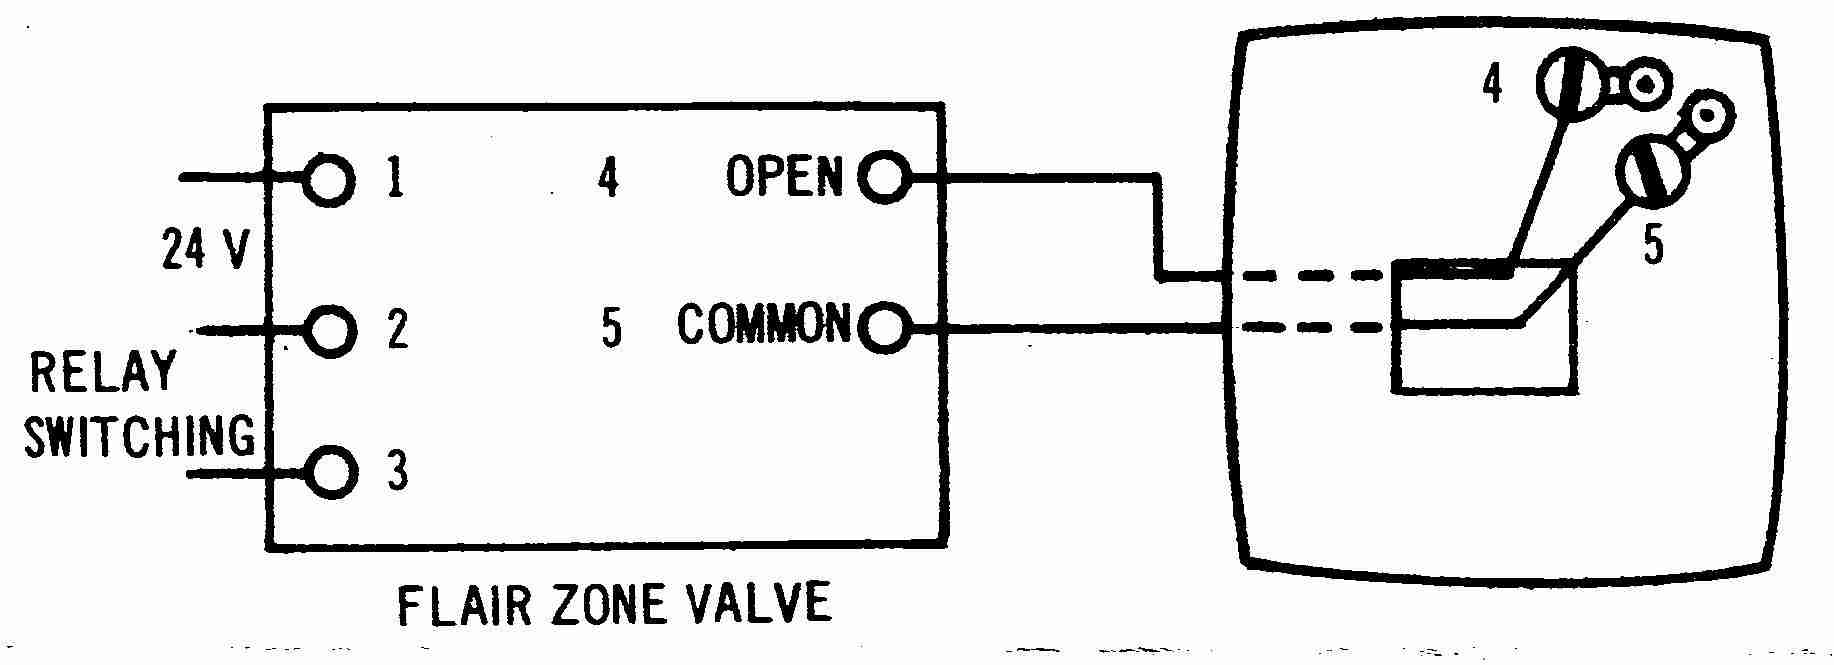 110 volt thermostat wiring diagram airplane cockpit hot water schematic room diagrams for hvac systems heater flair 2 wire thermosat